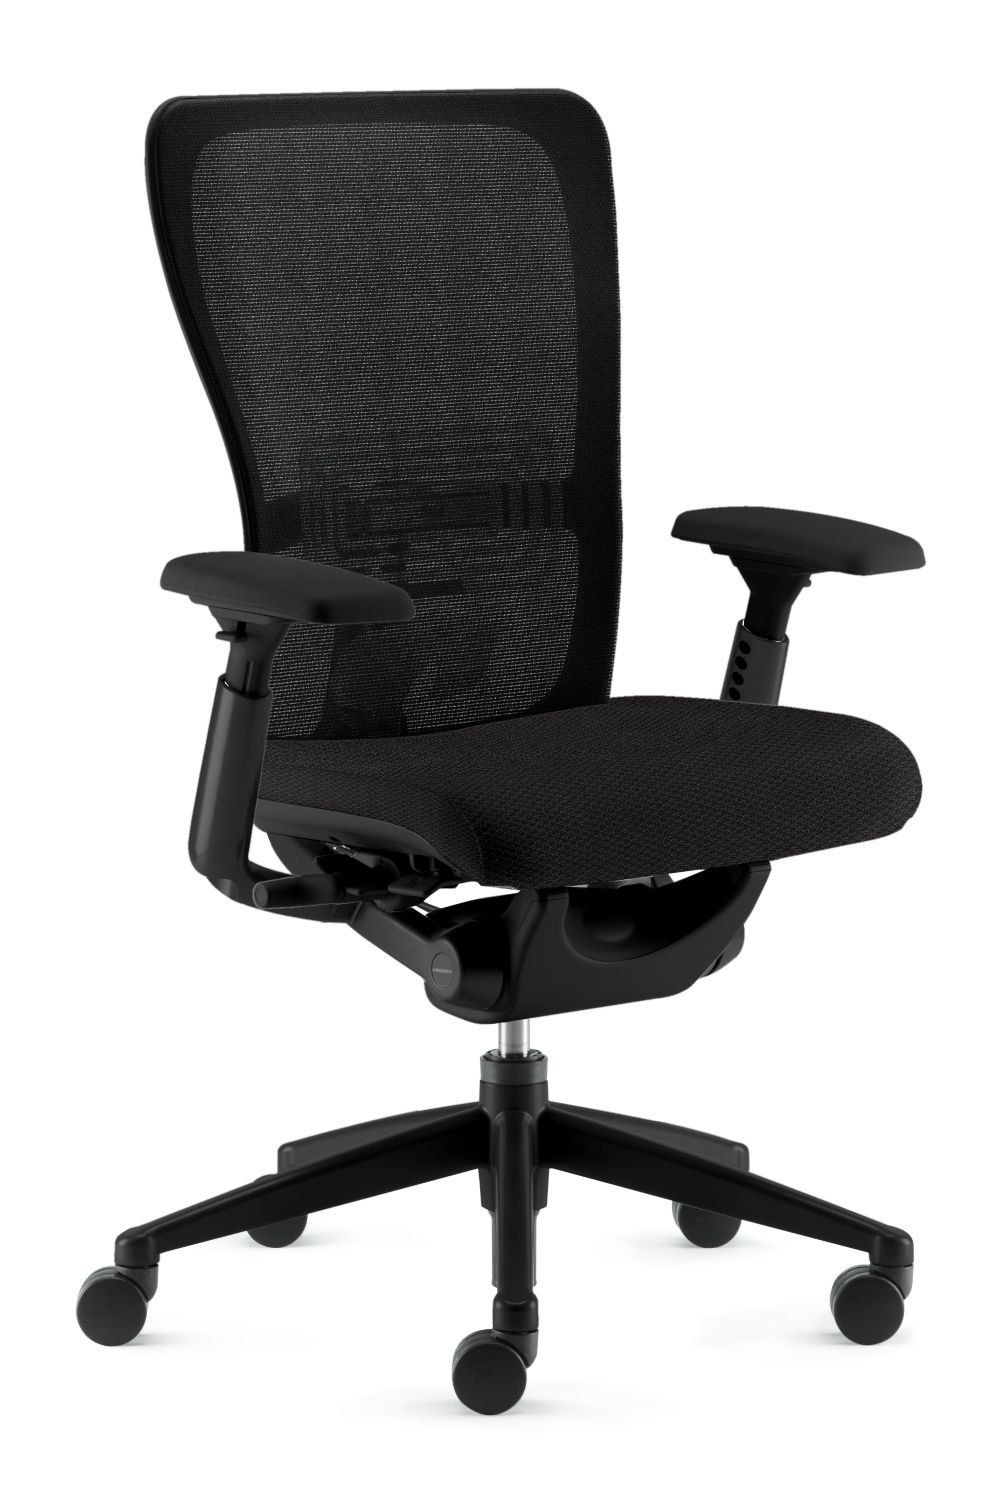 Haworth Zody Chair Lumbar Support 4 D Arms Prices Review Best Ergonomic Office Chair Ergonomic Office Chair Best Office Chair